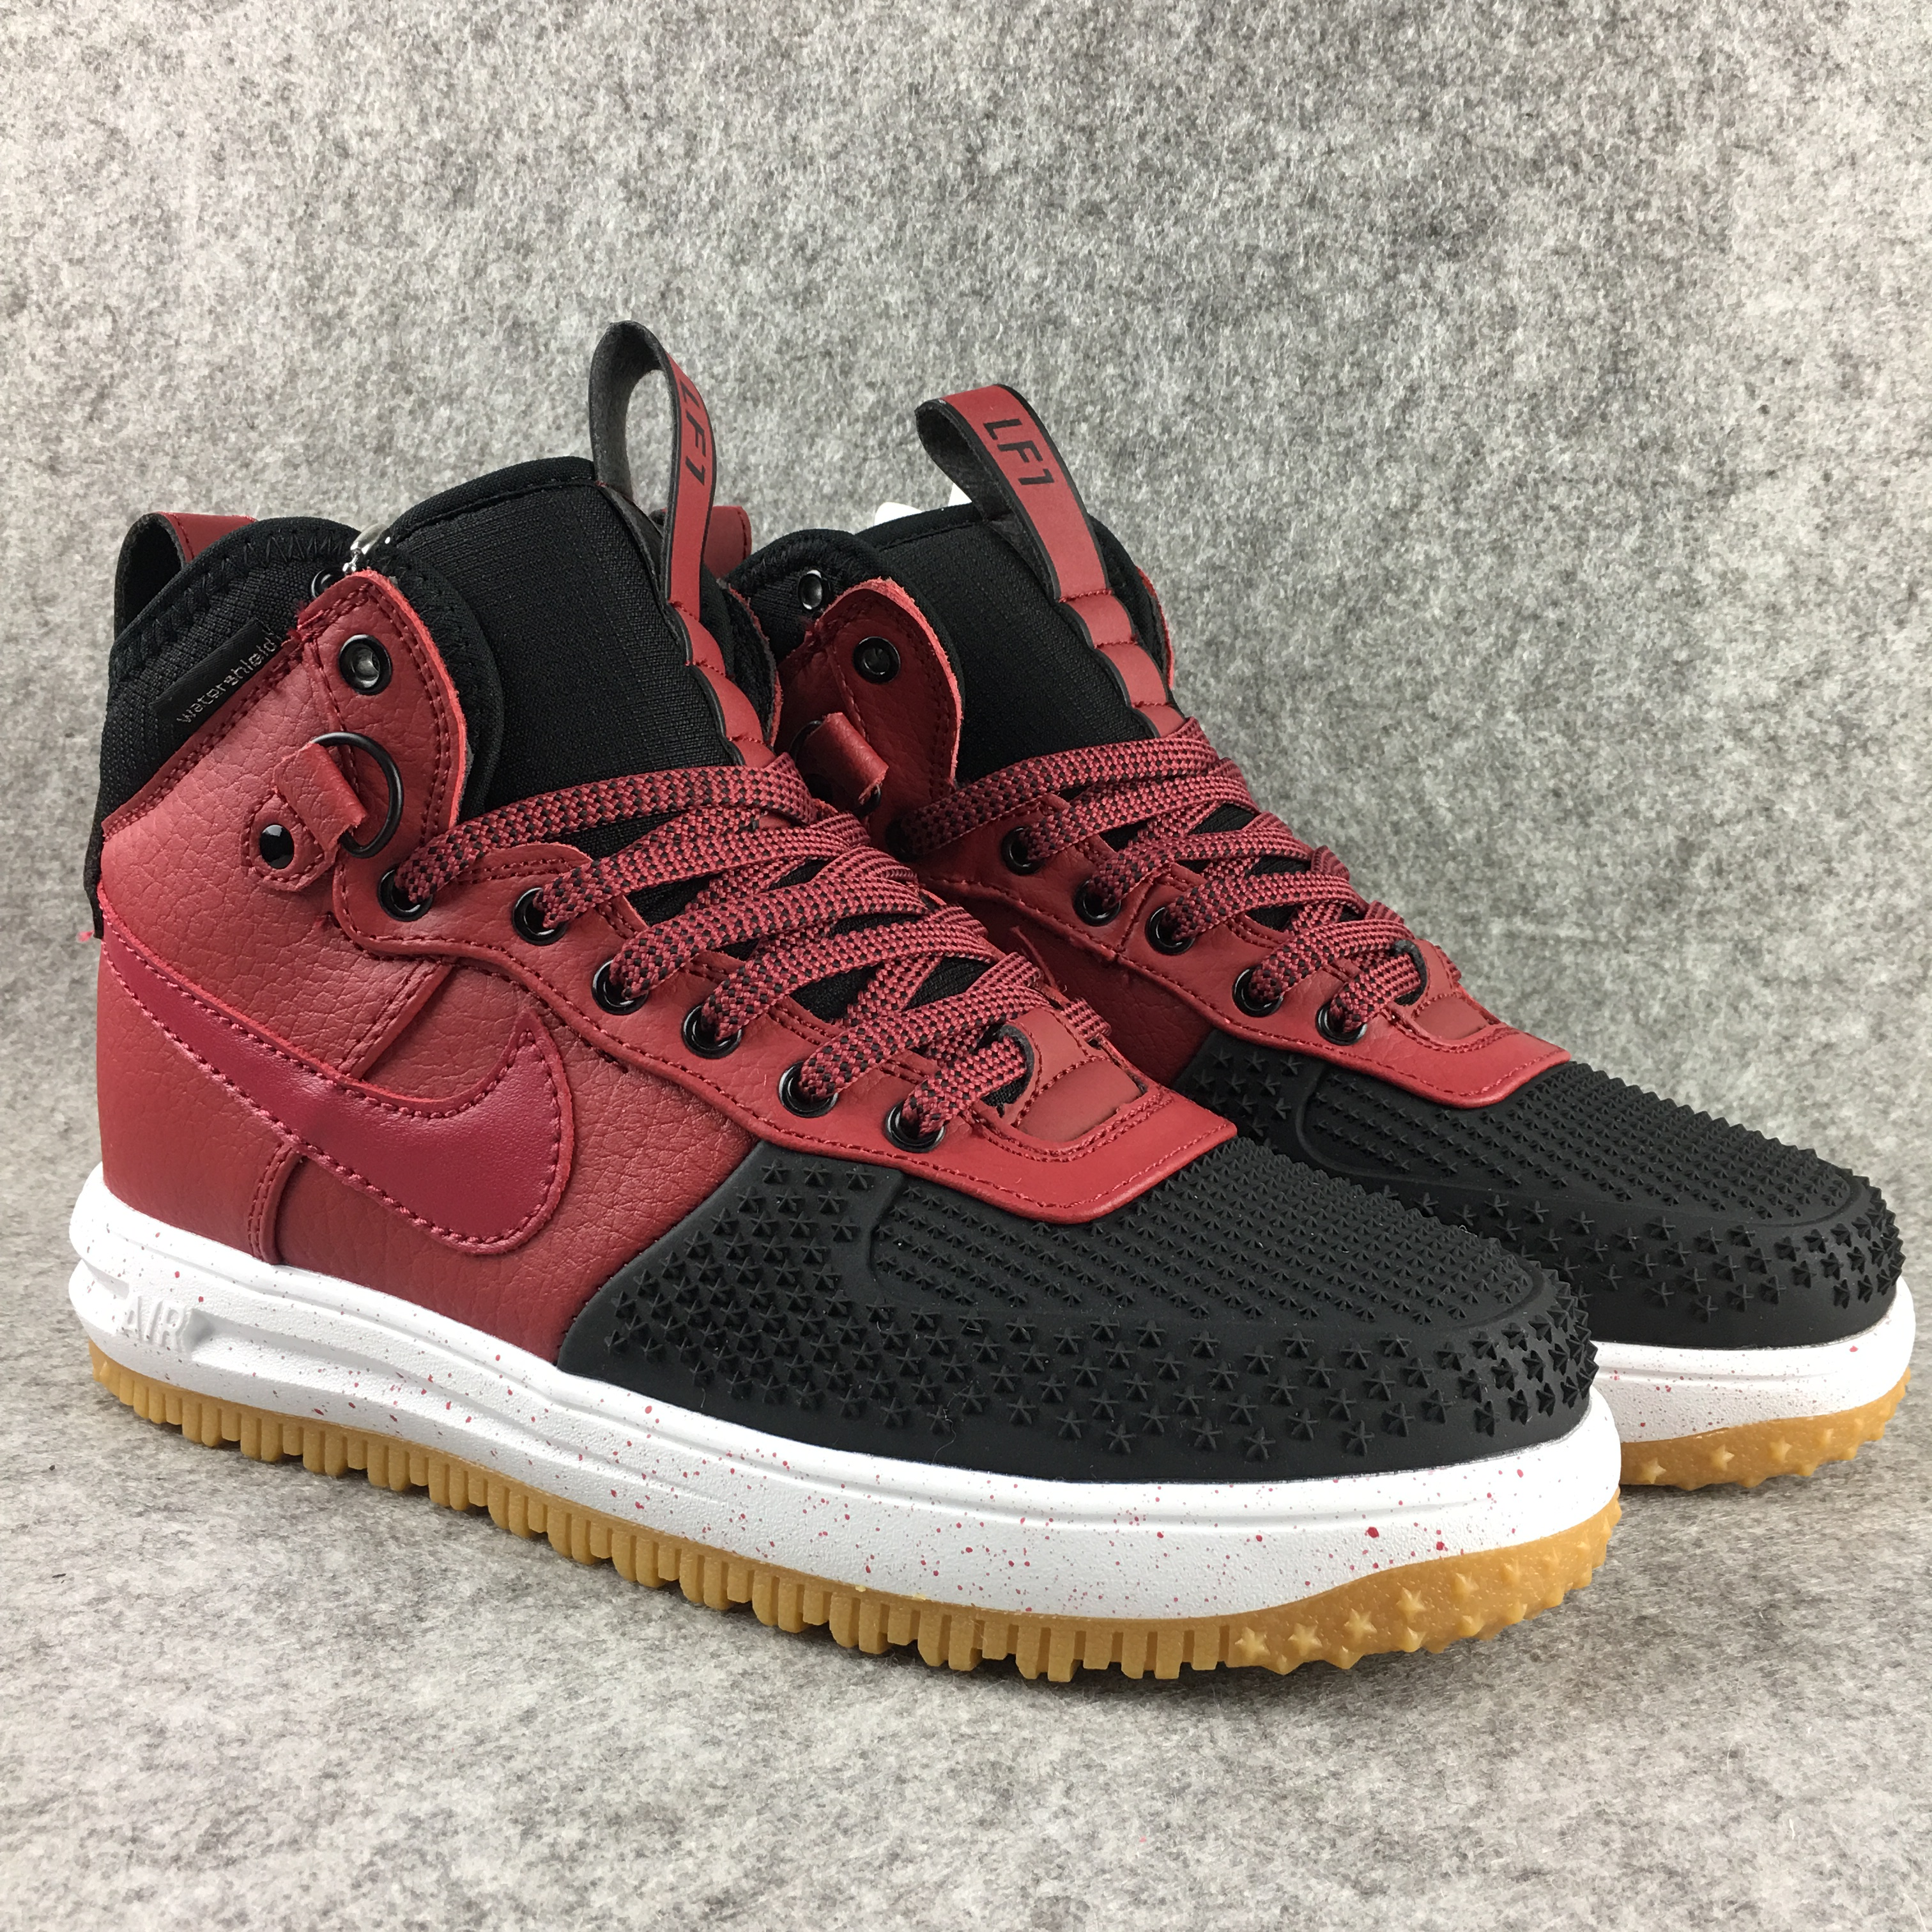 New Nike Lunar Force 1 High Wine Red Black